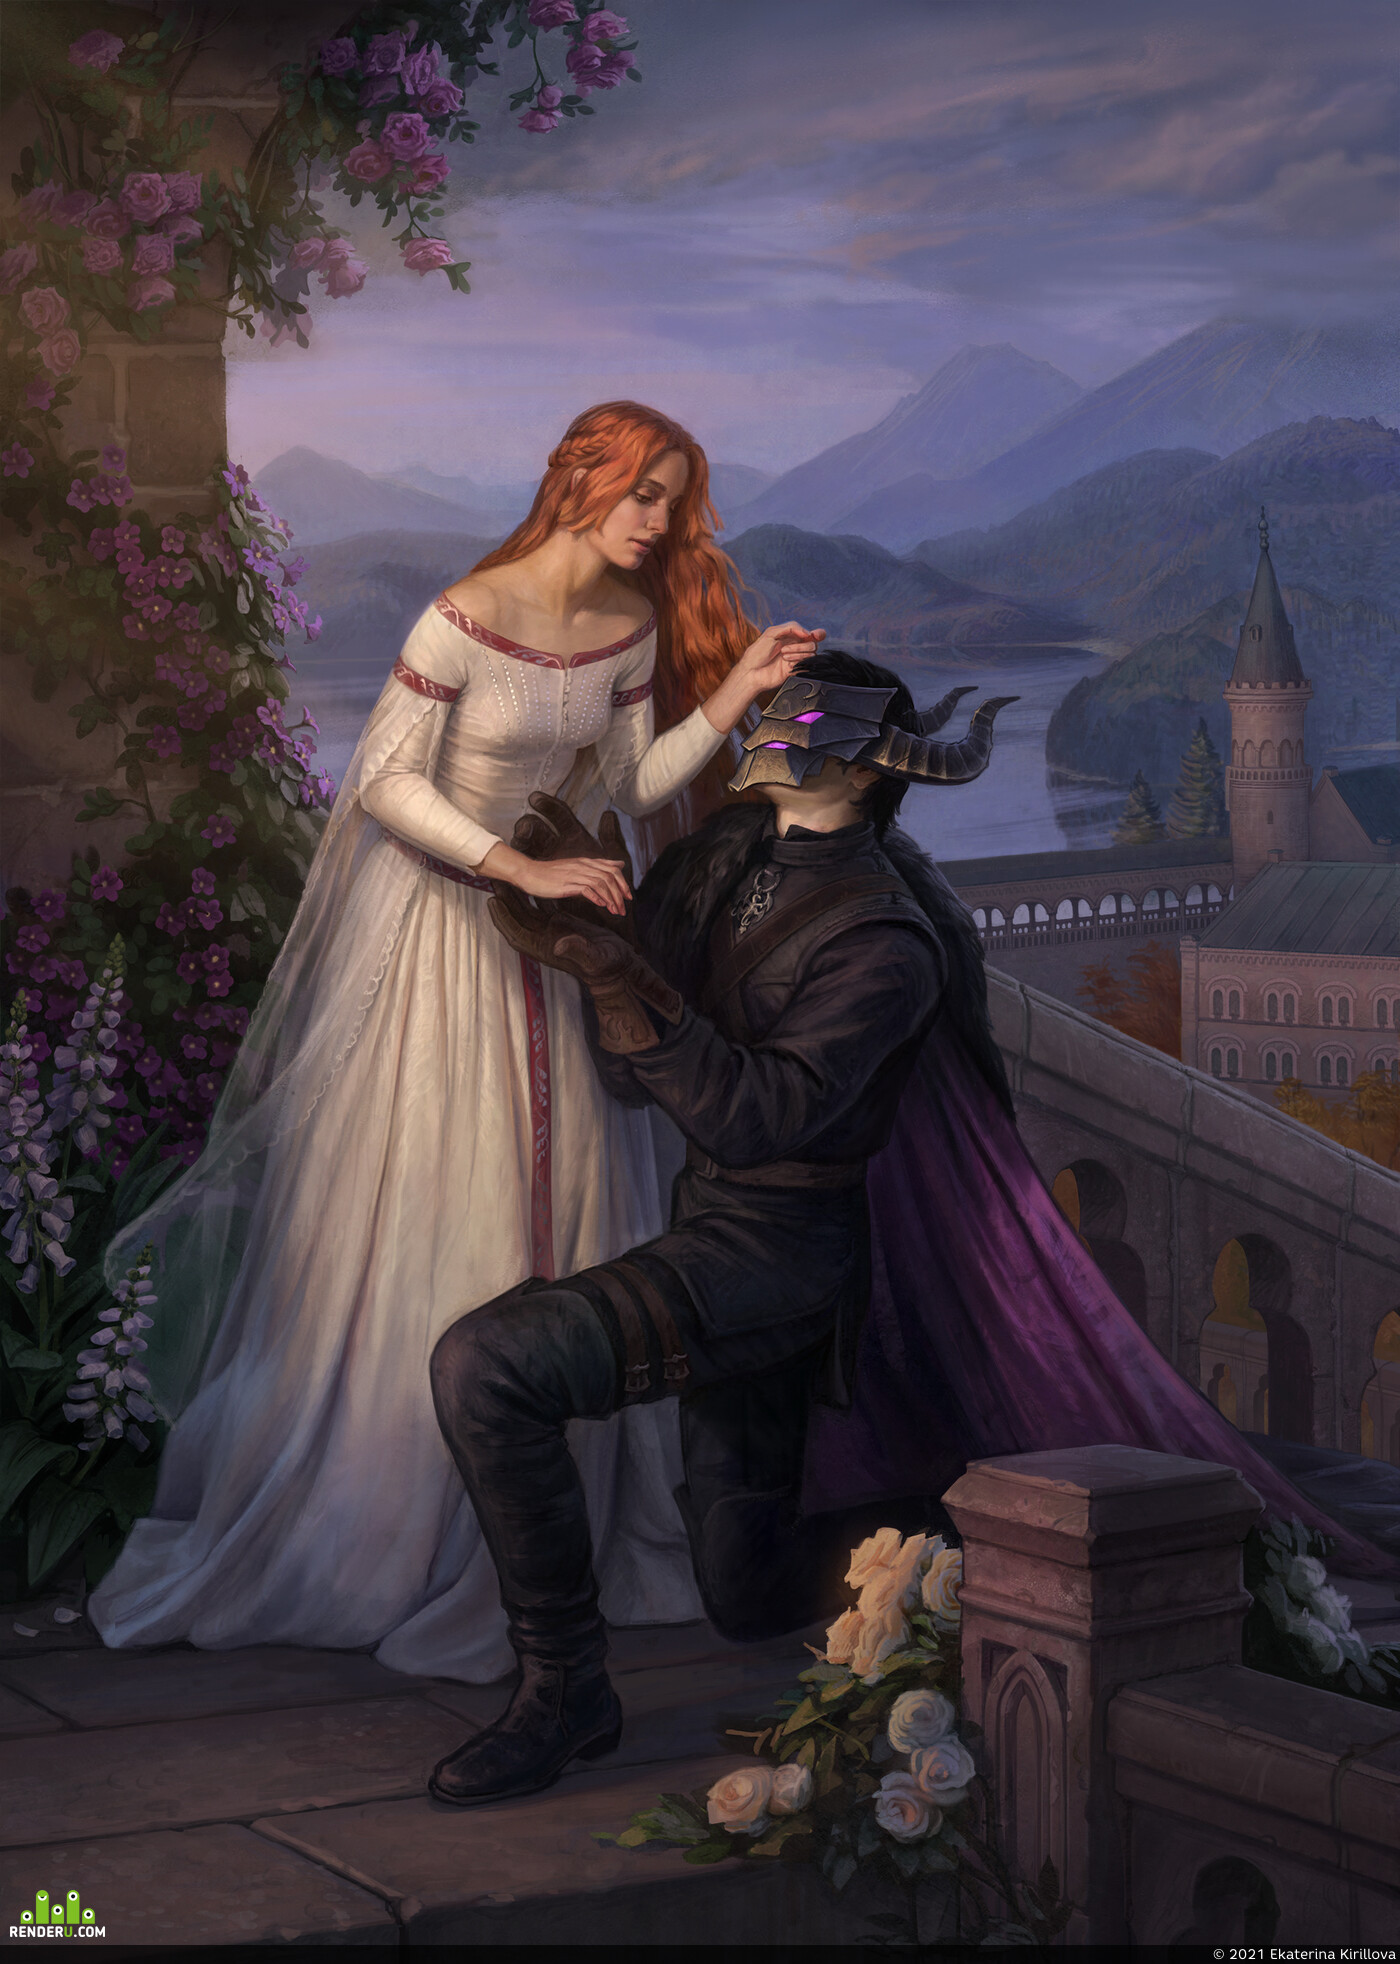 medieval, illustration, knight, lady, sunset, People, Characters